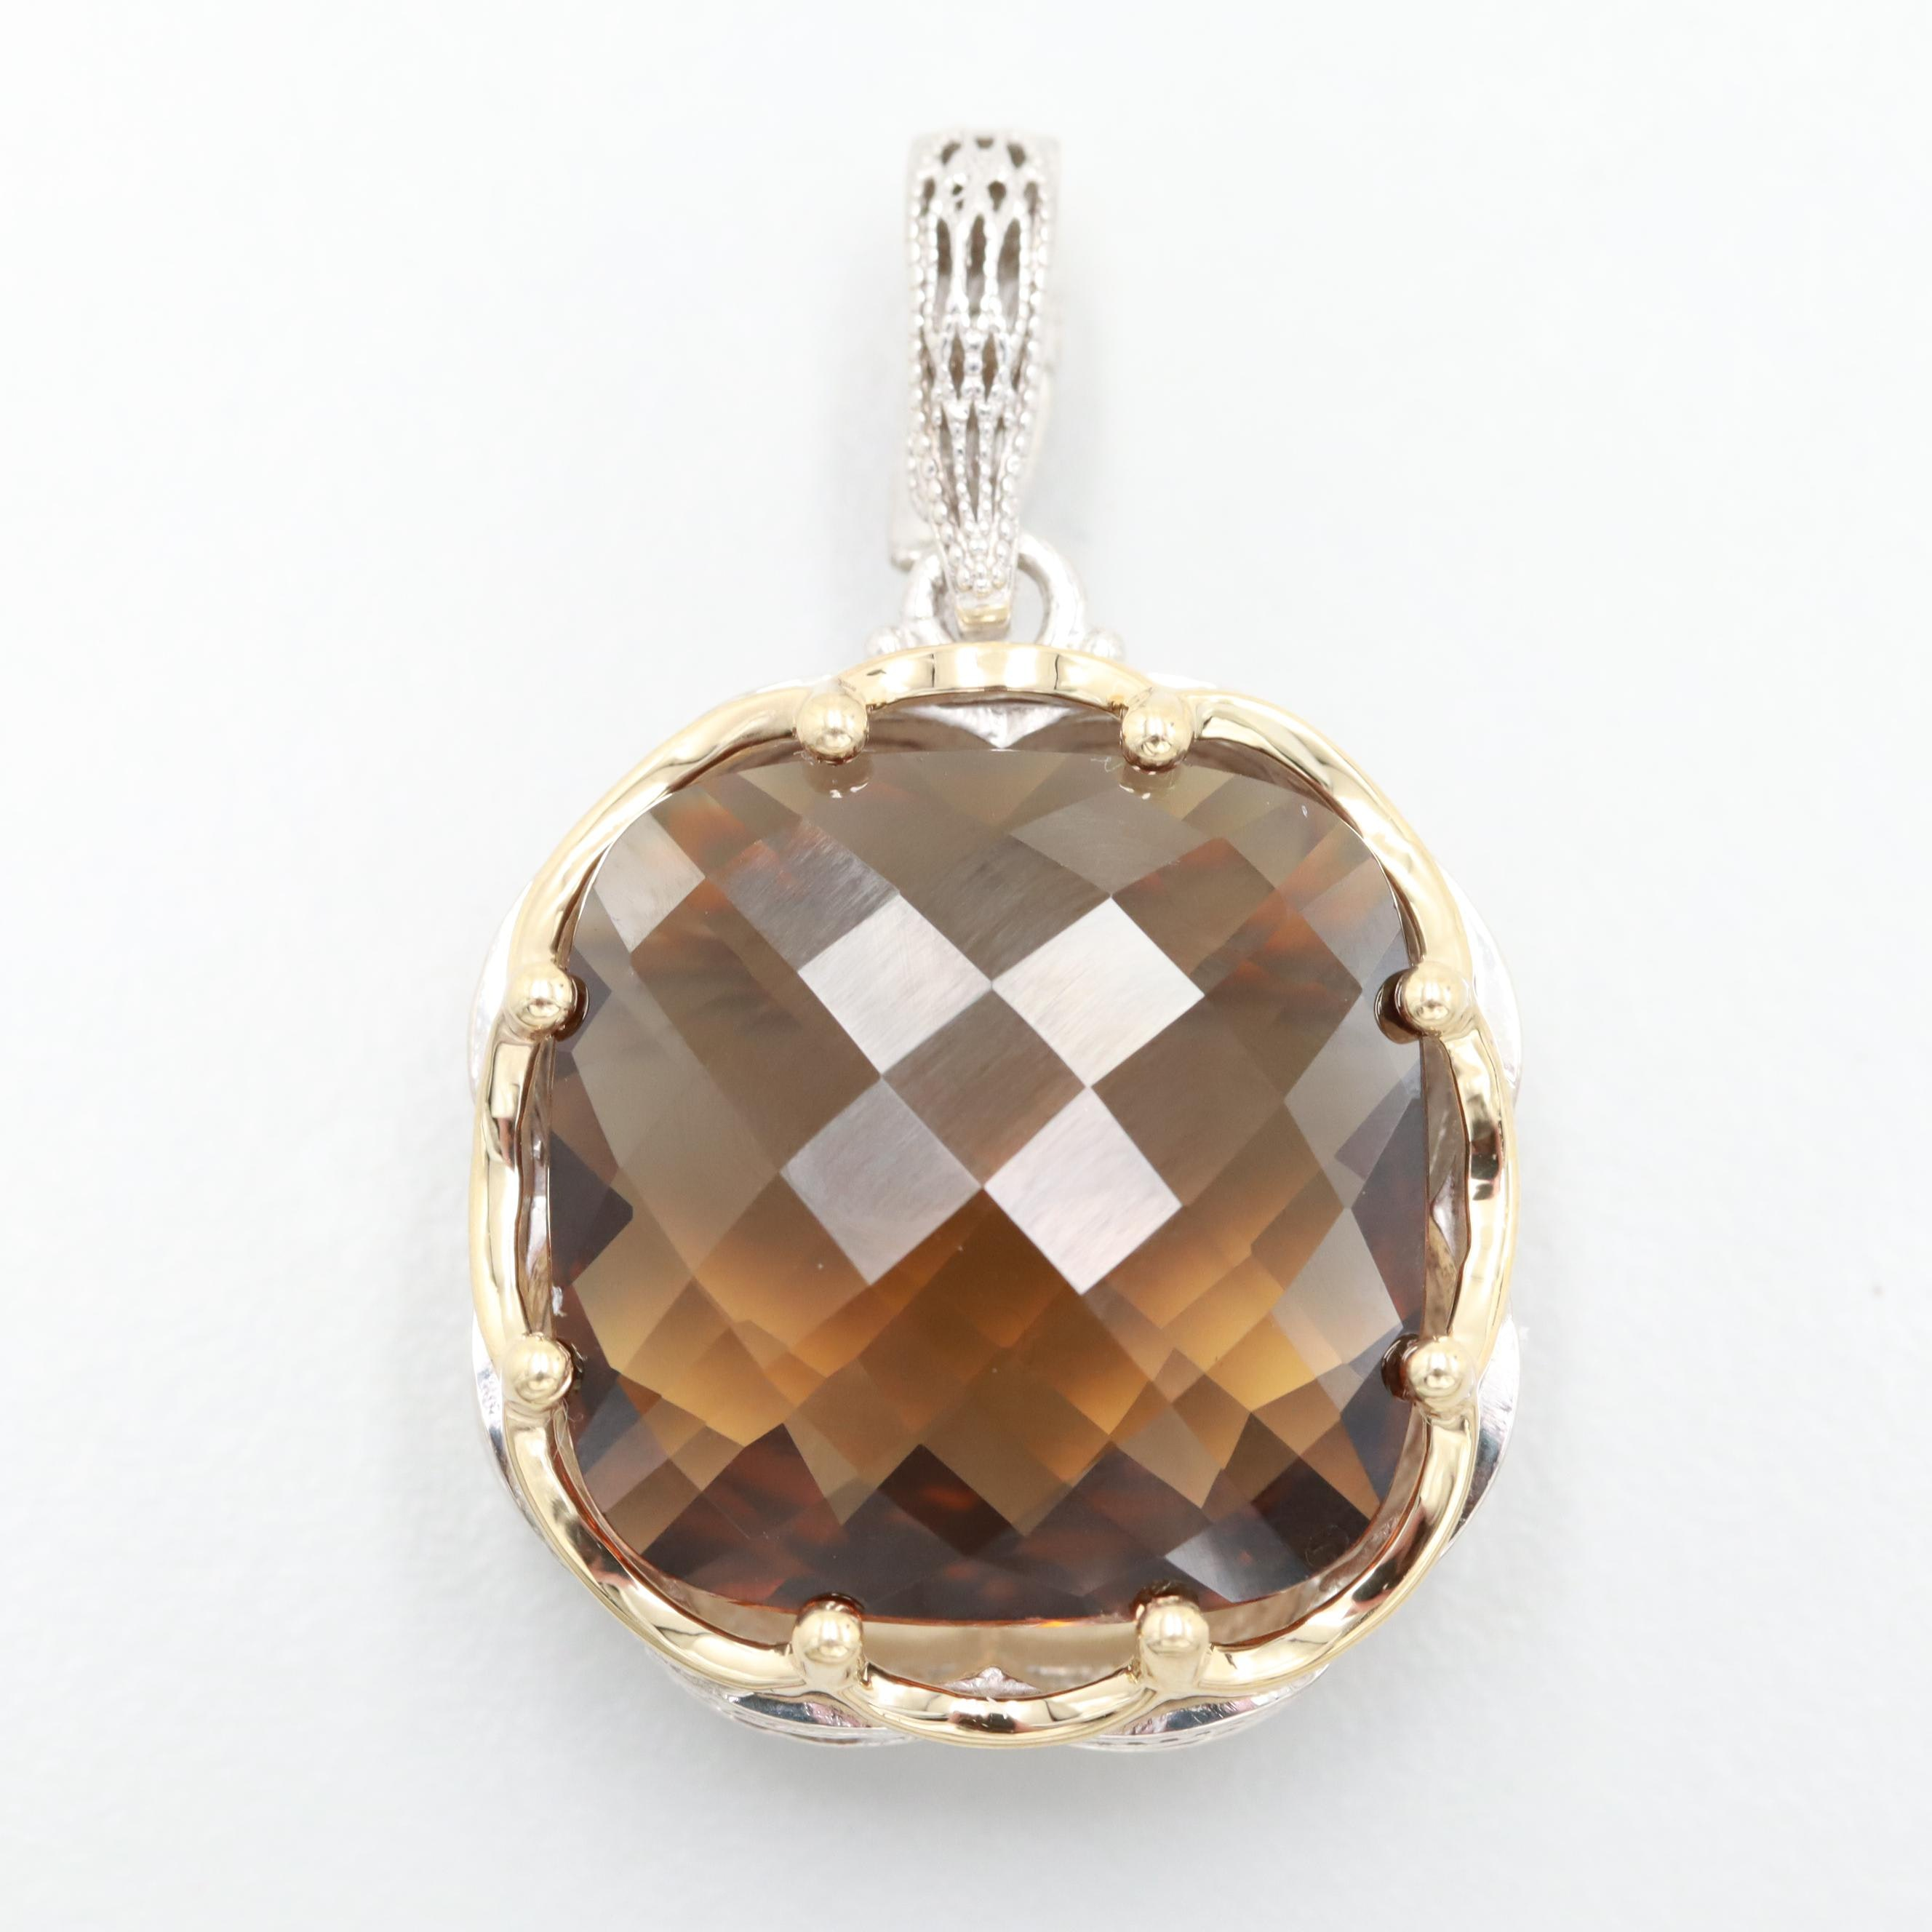 Tacori Sterling Smoky Quartz Enhancer Pendant with 18K Yellow Gold Accents